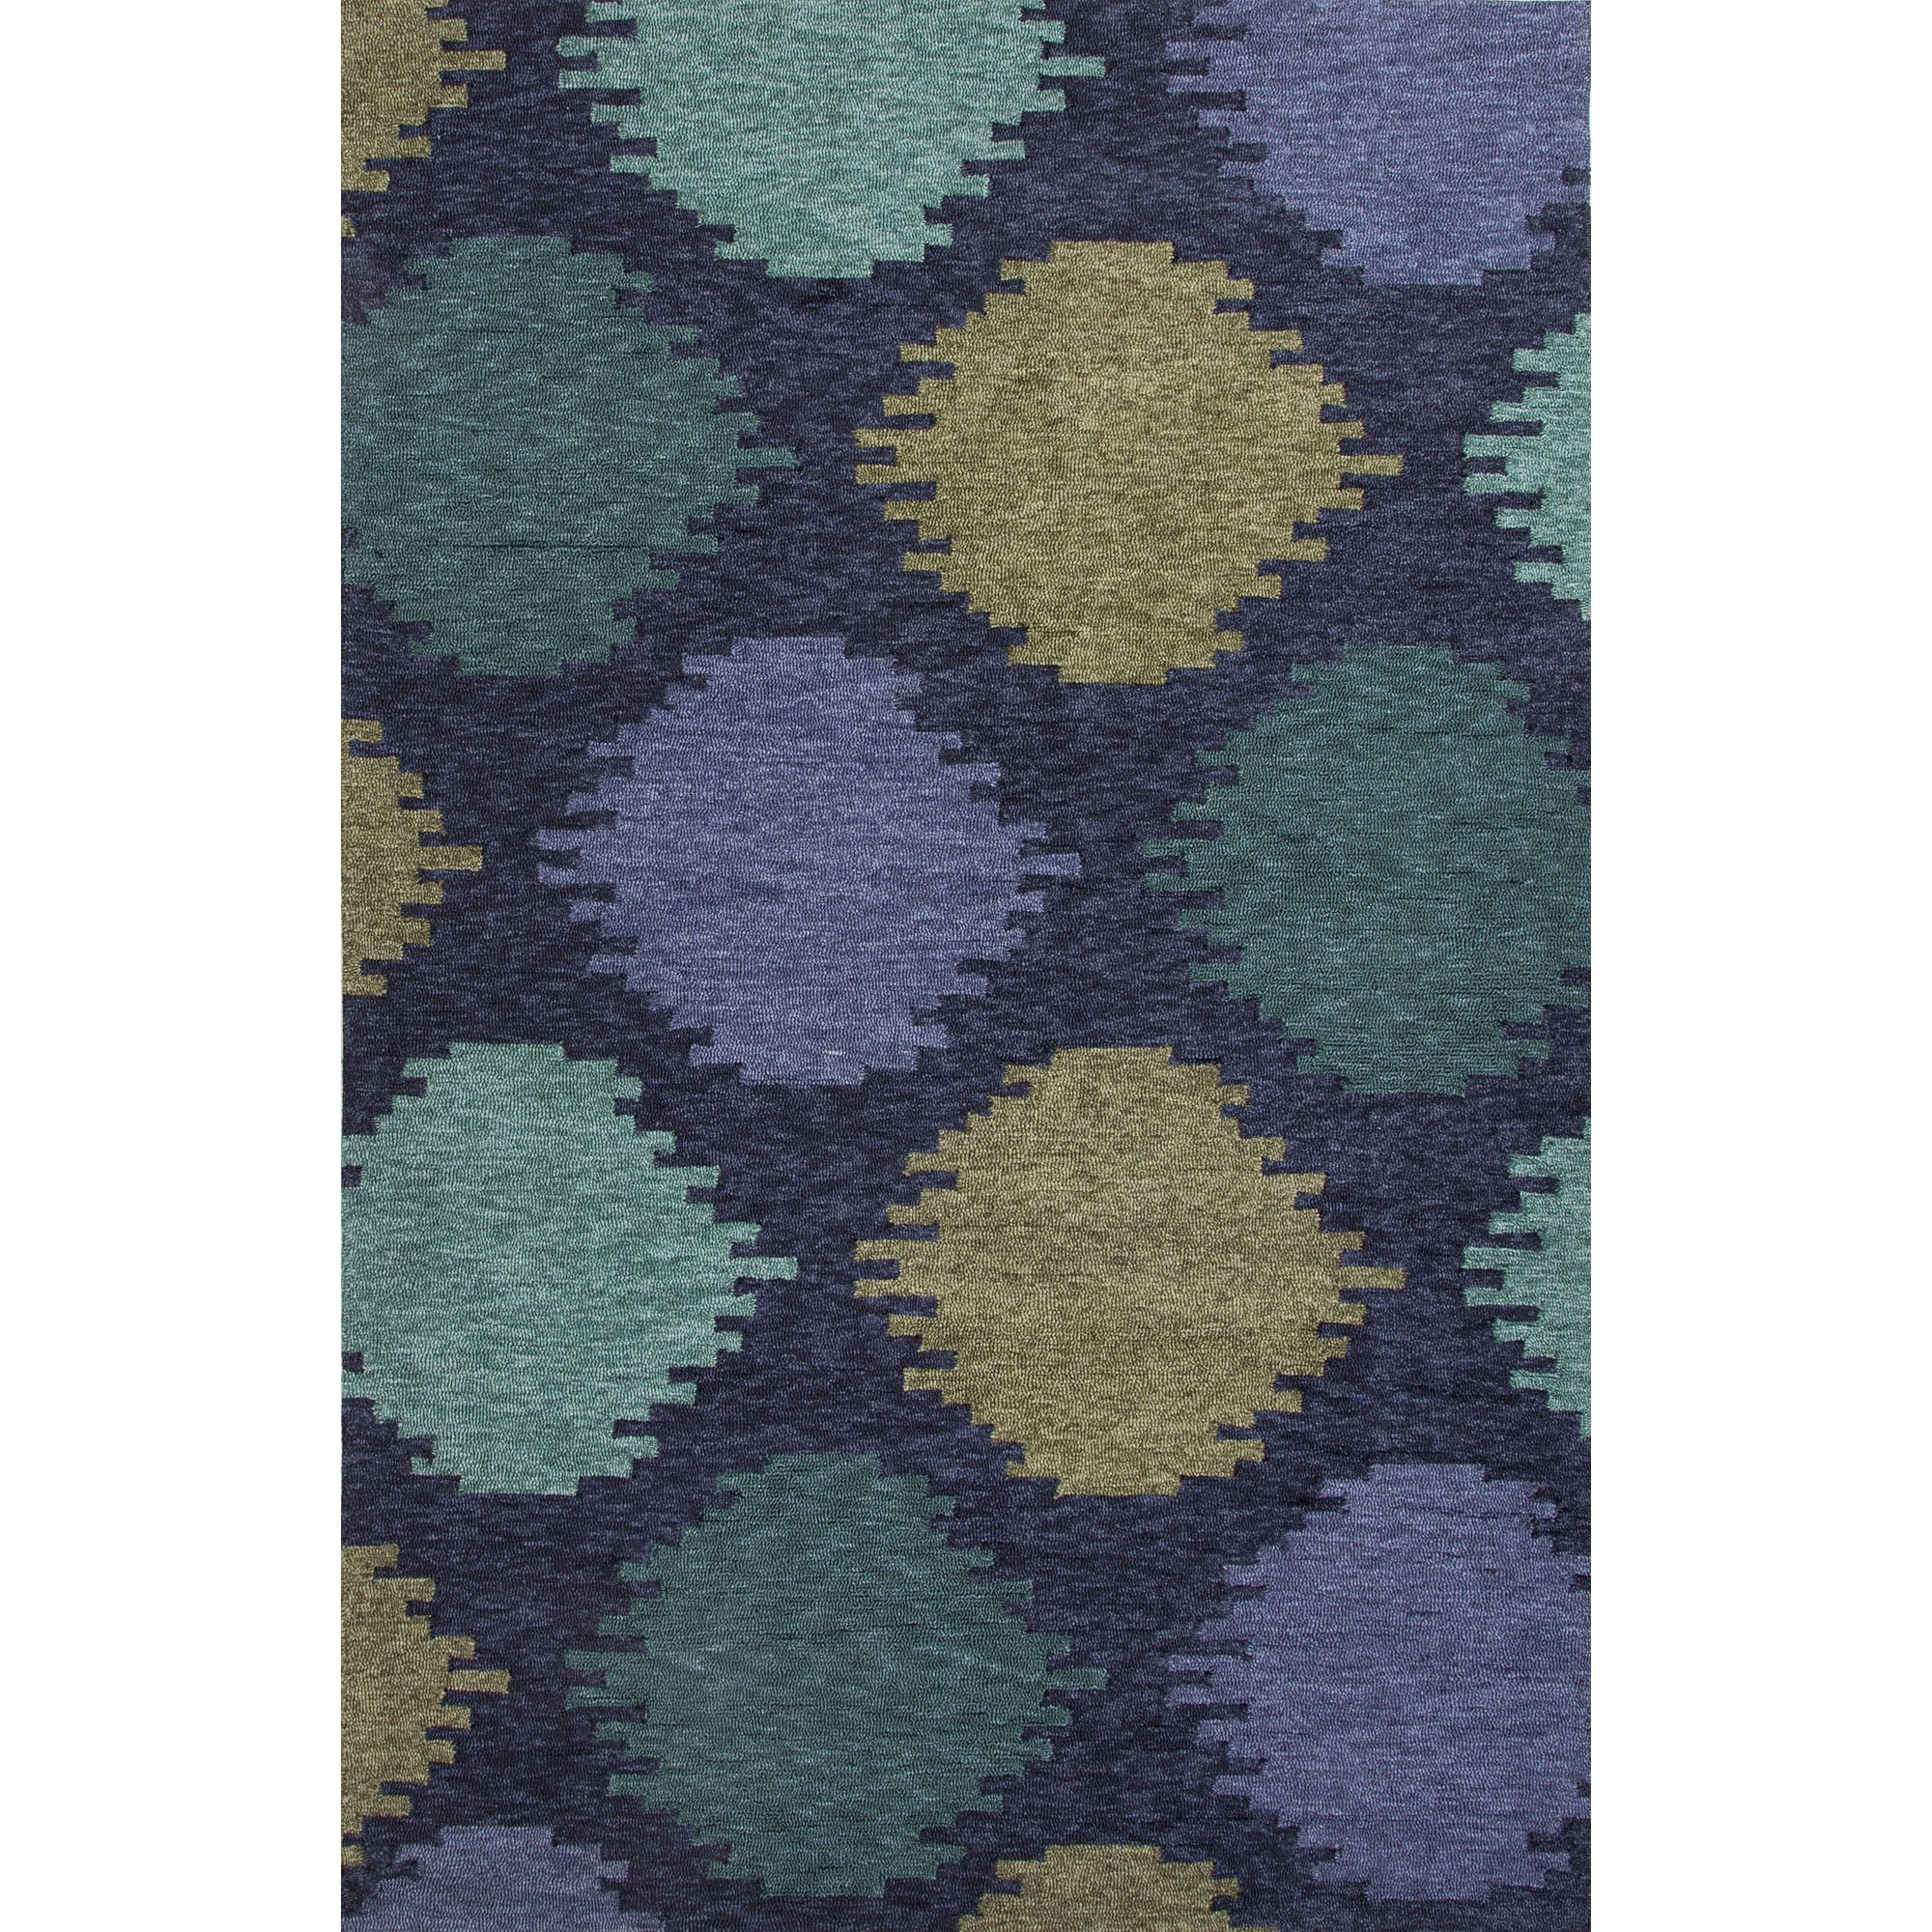 Jaipur Rugs IndoorOutdoor Geometric Pattern Blue/Green Polyester Area Rug CAT07 (Rectangle)